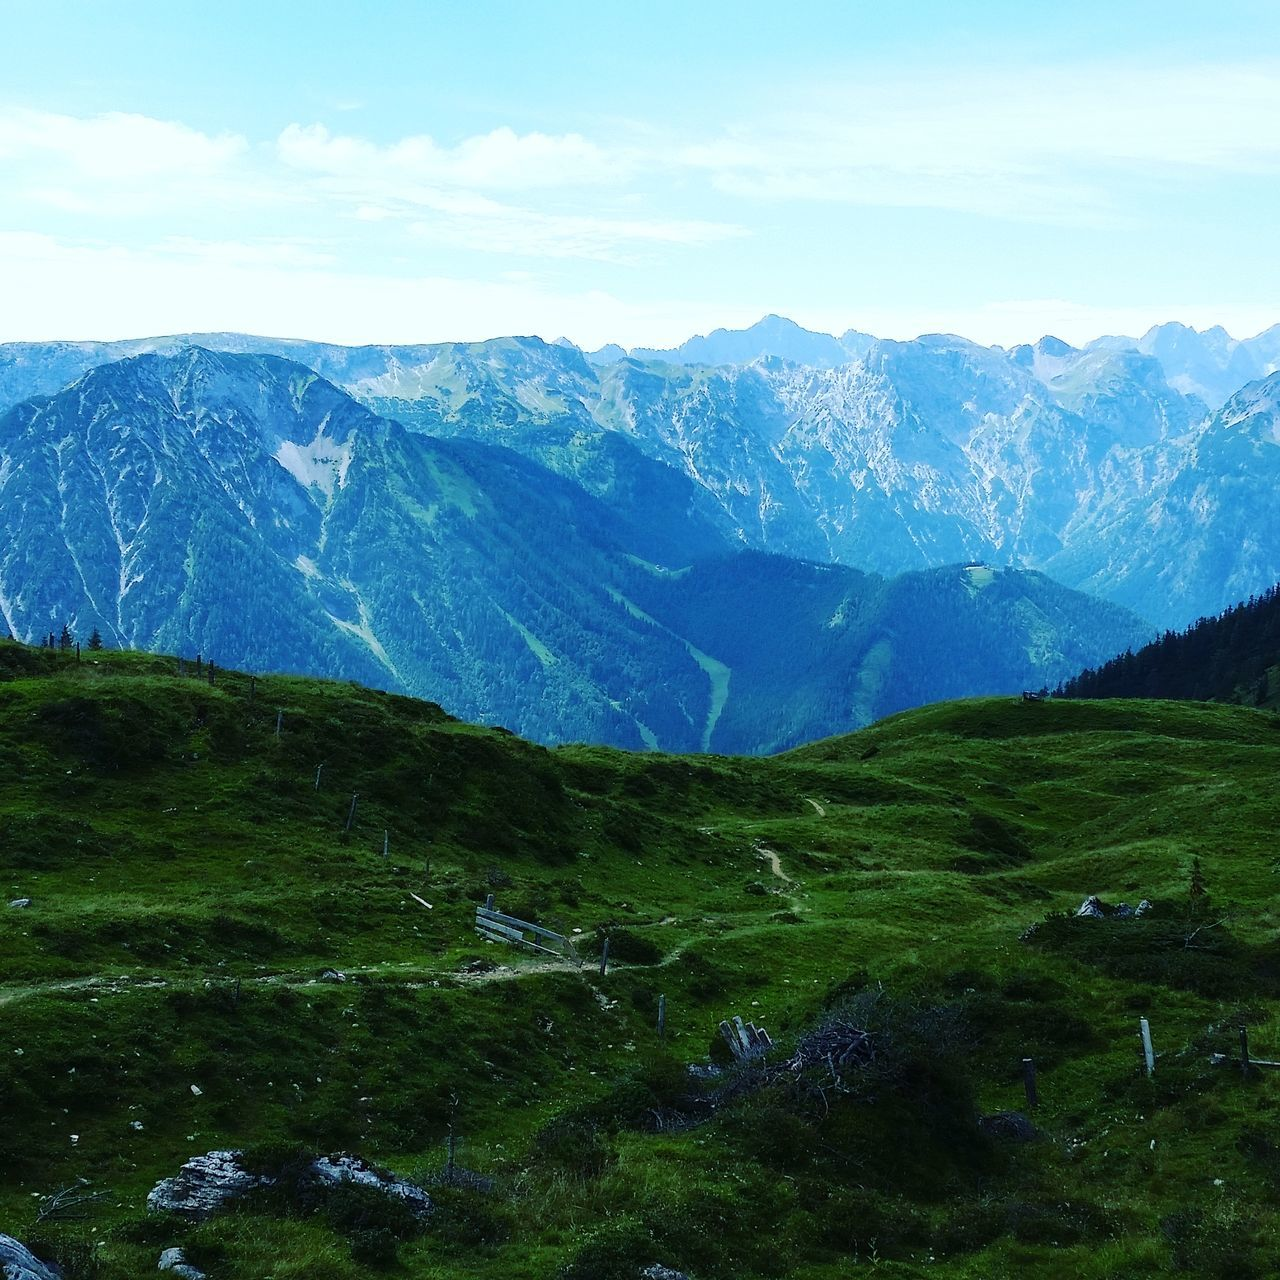 mountain, nature, sky, beauty in nature, tranquil scene, scenics, tranquility, no people, landscape, mountain range, outdoors, day, grass